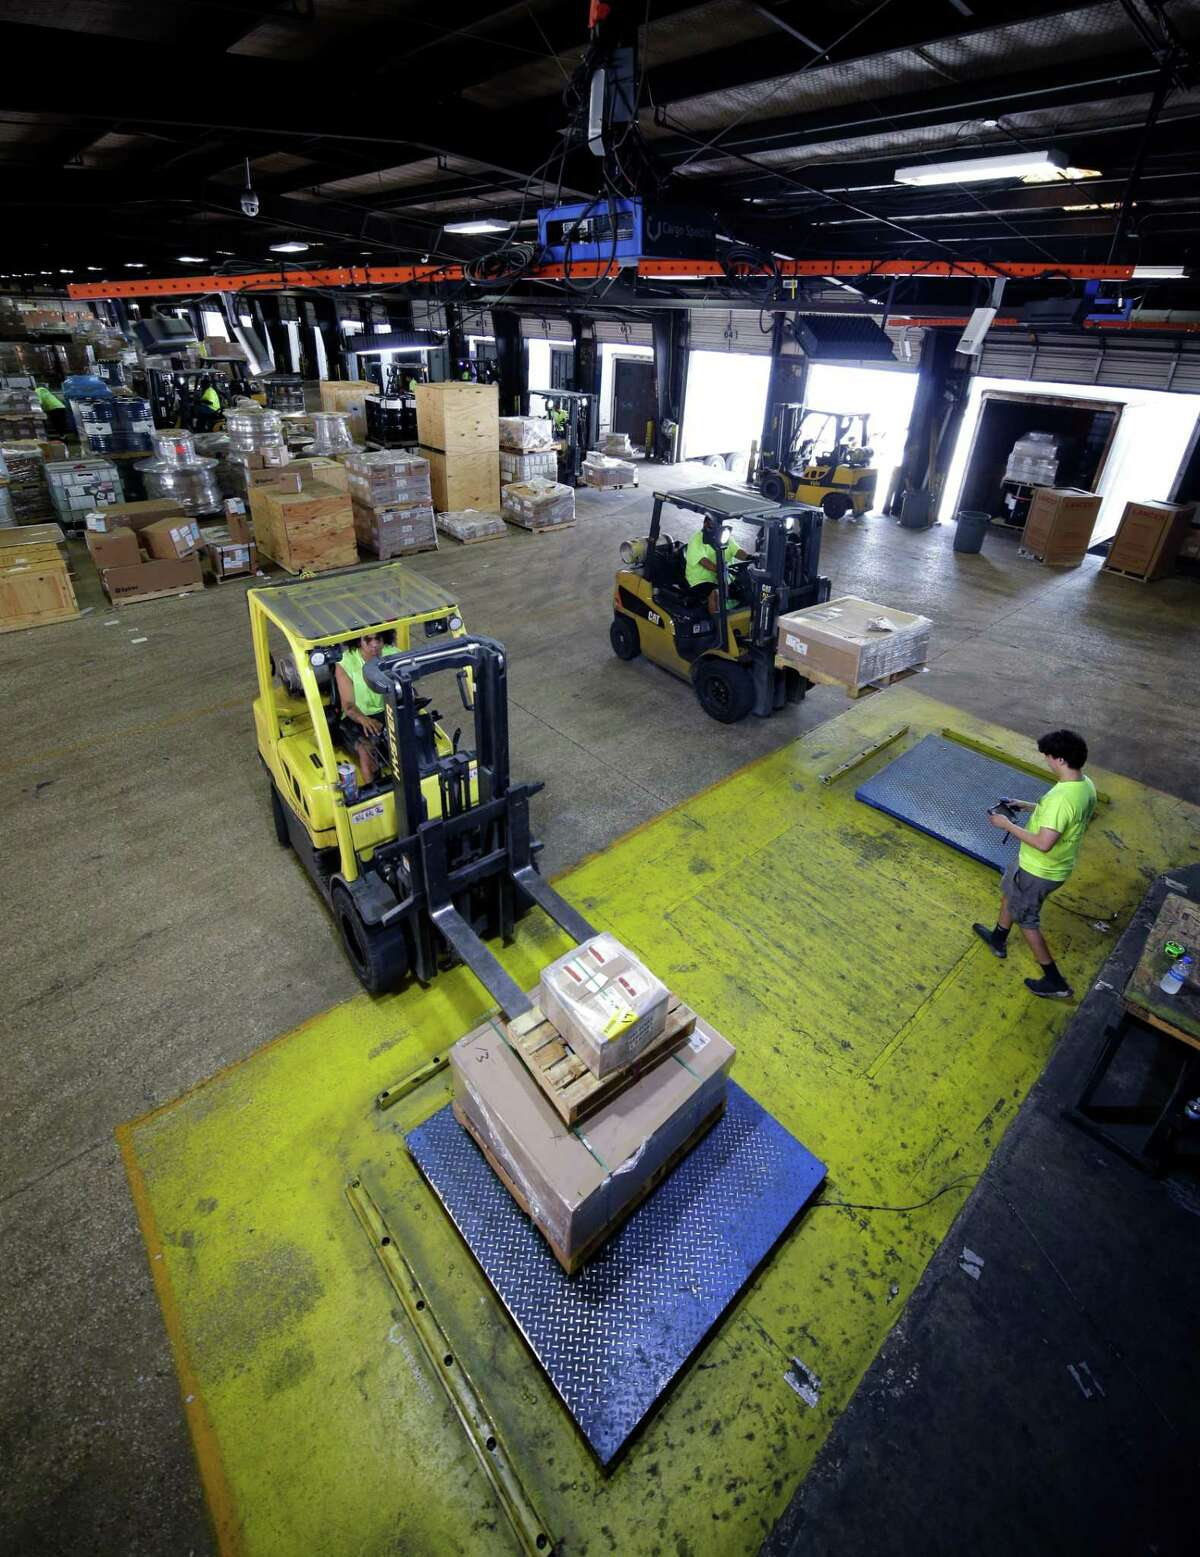 The Cargo Spectre apparatus, the orange bar (at top) suspended from the ceiling over blue weight scales where freight pallets are placed by forklifts, has sensors and lights to fully automate instantaneous weight and dimension data of the pallets in the warehouse at World Trade Distribution Thursday, Aug. 12, 2021 in Houston, TX.